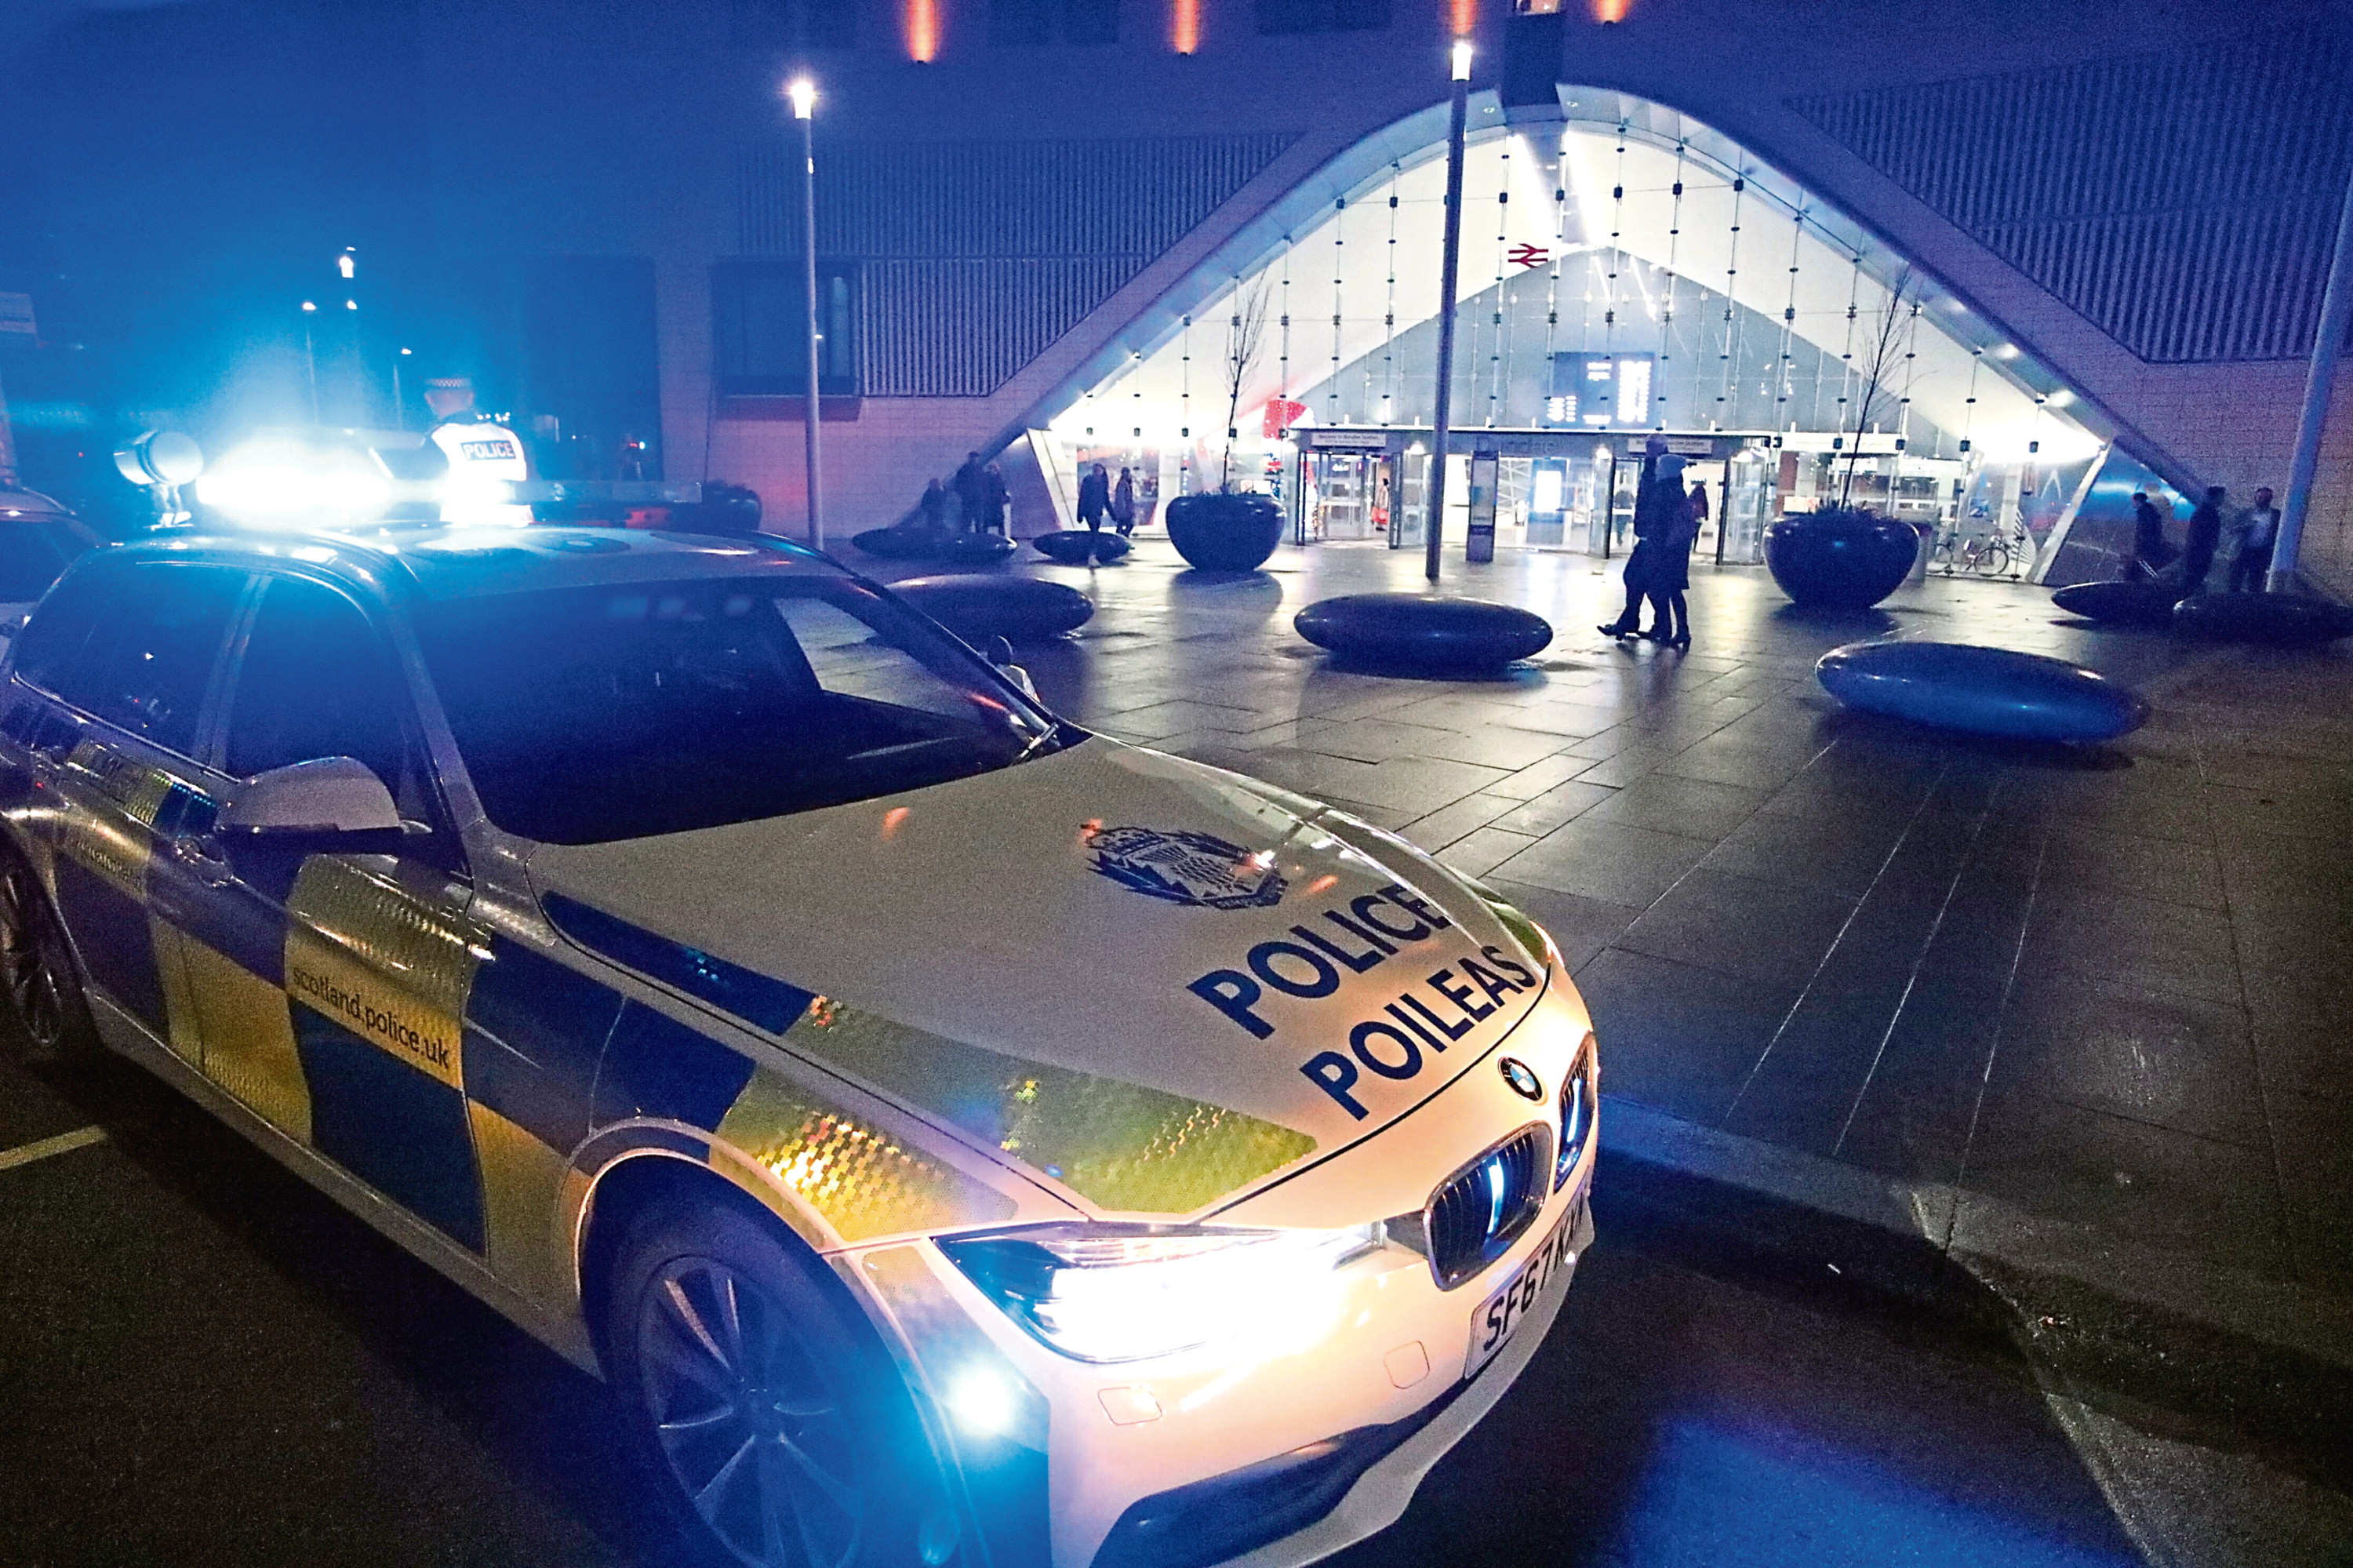 Police outside Dundee Railway Station after the fight.